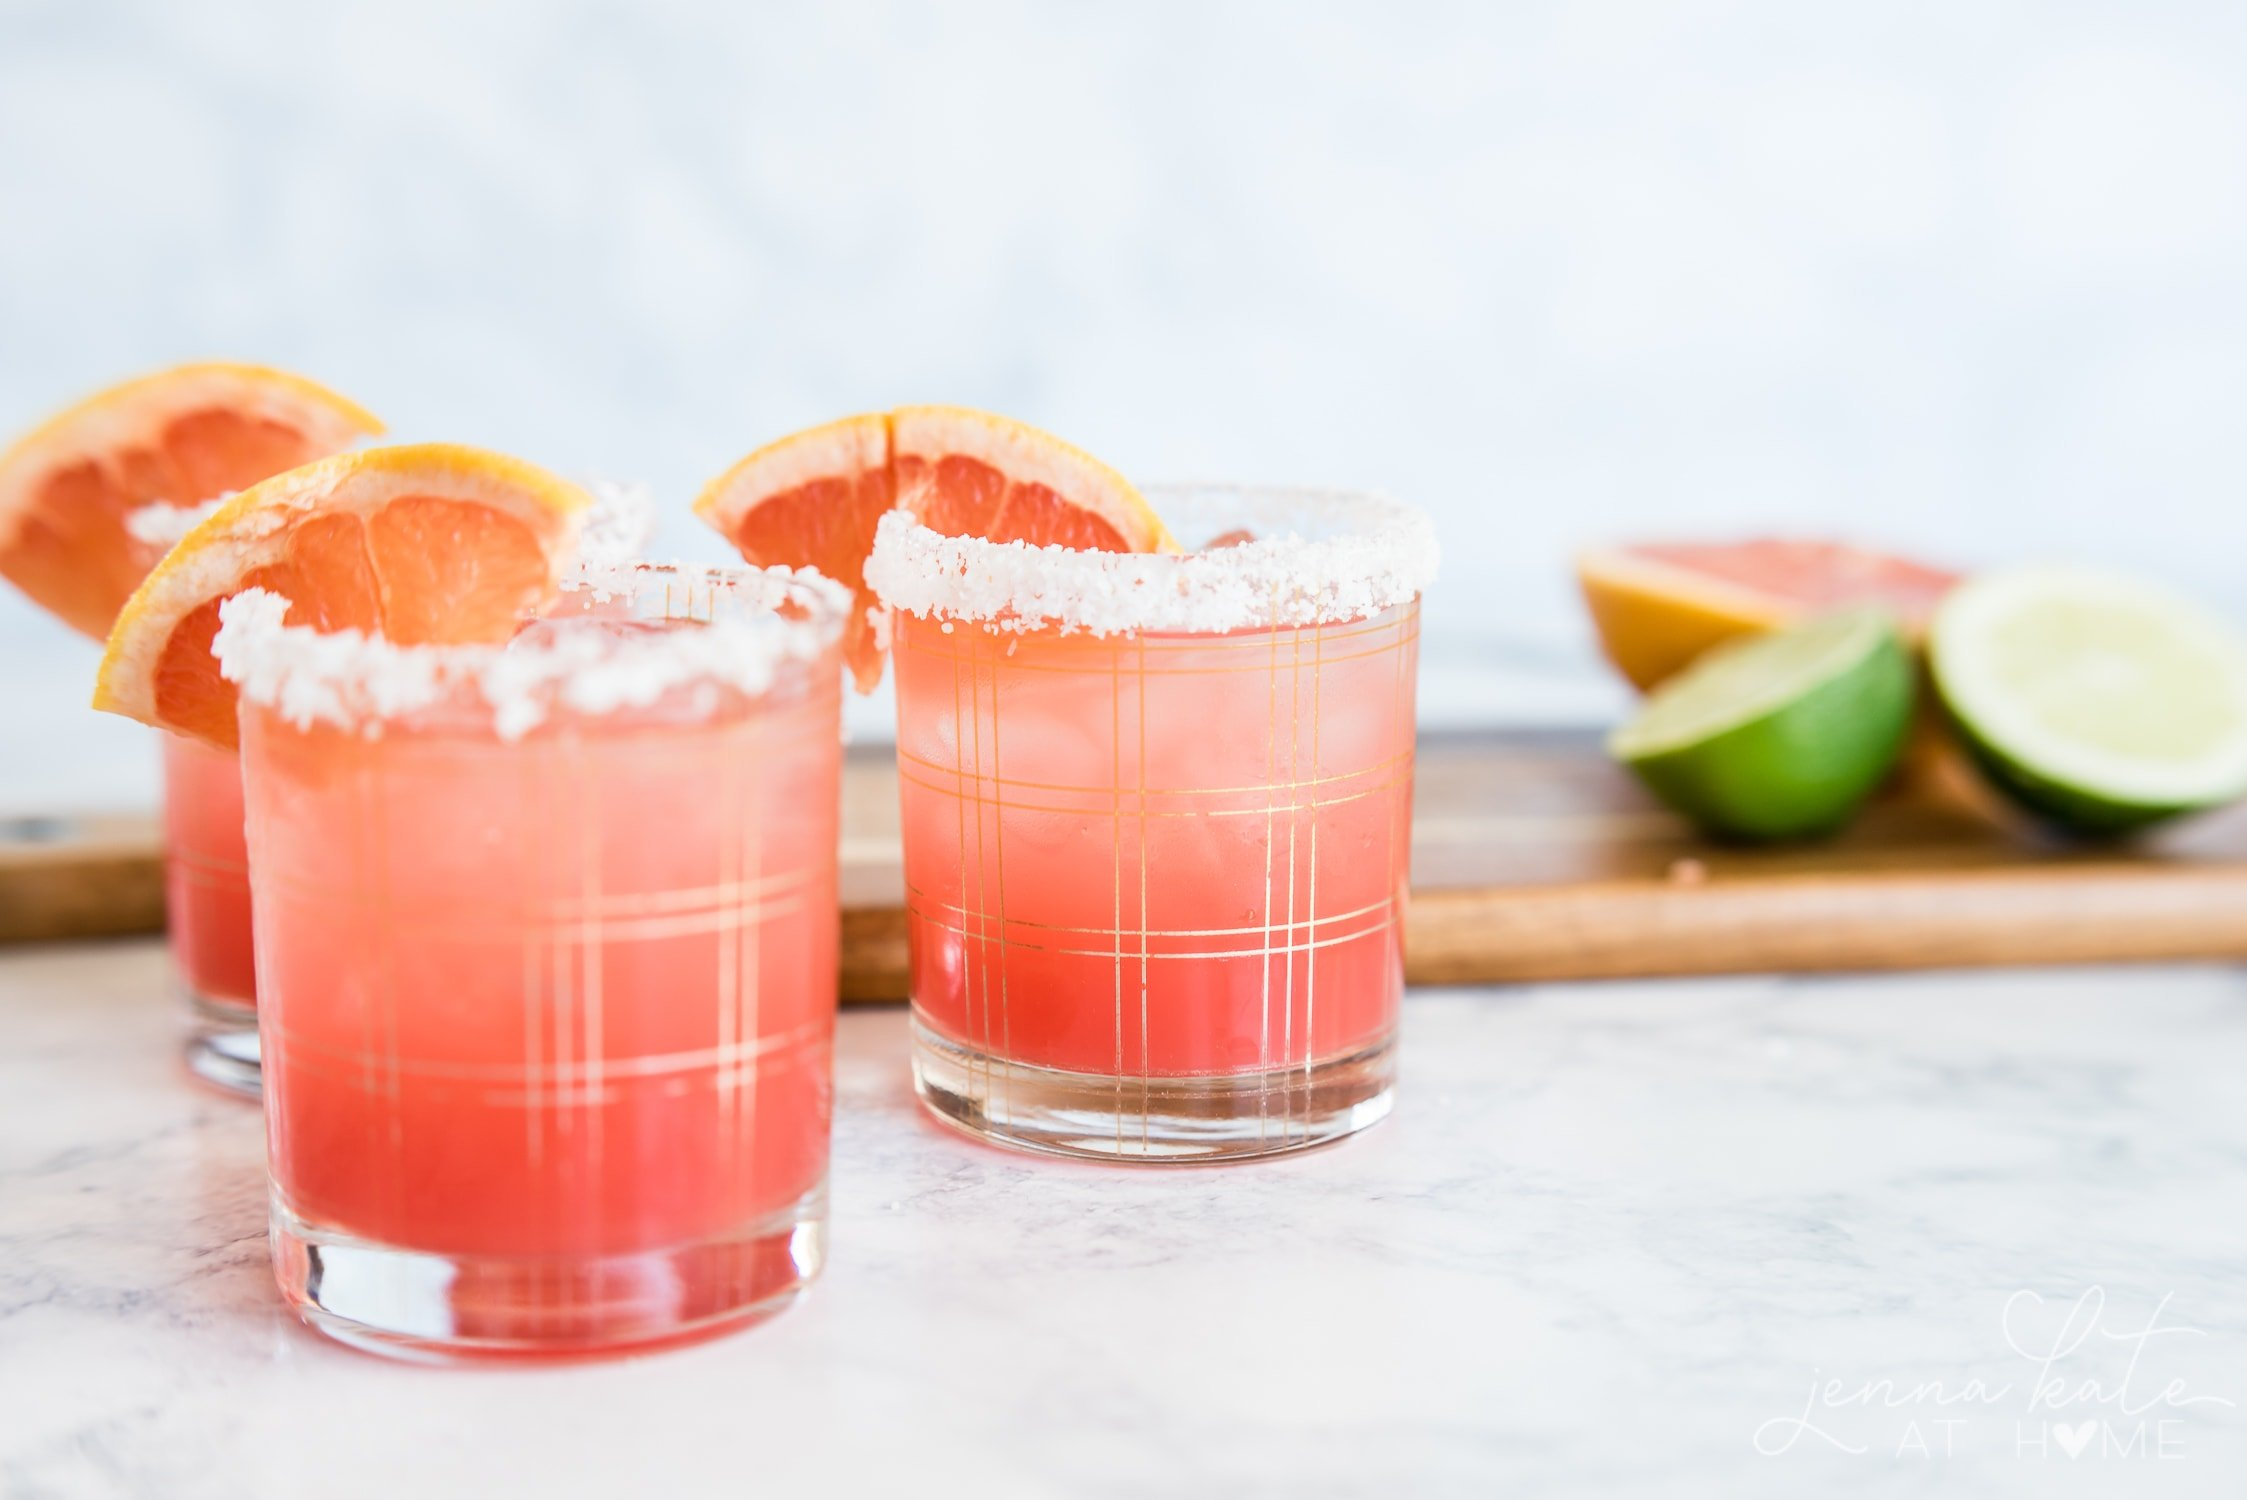 Three graprefruit cocktails with limes in the background